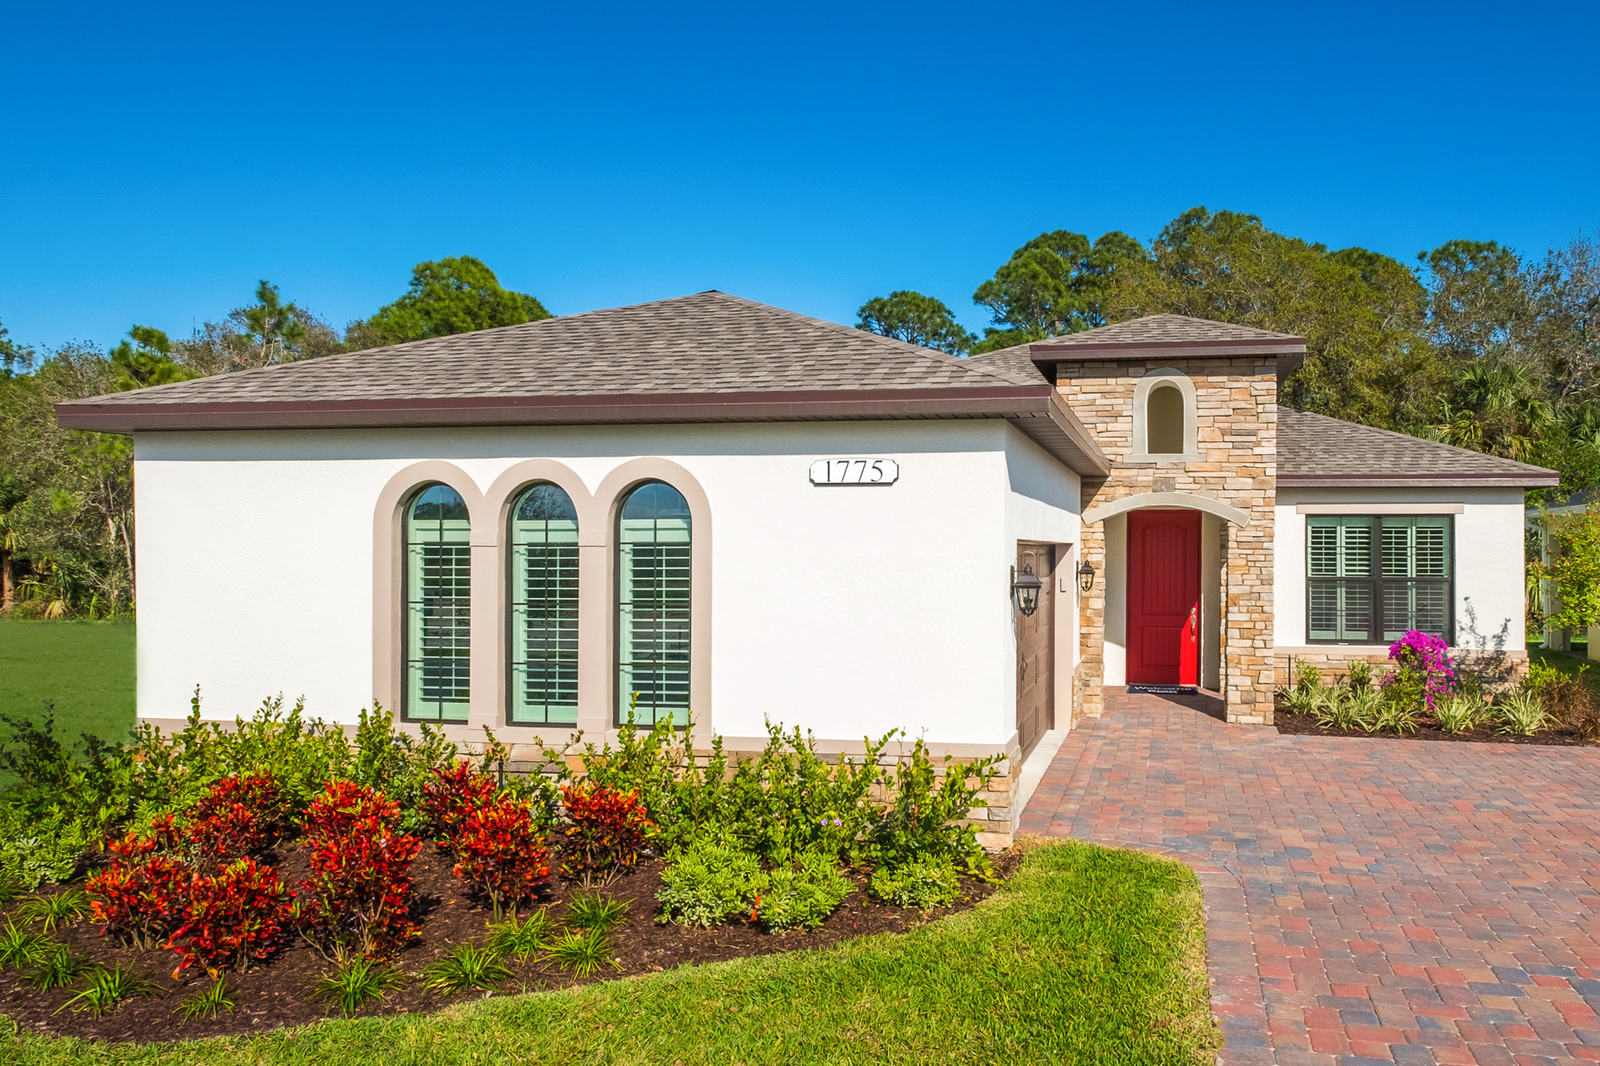 New laurel home model for sale at the willows in vero for The laurel house